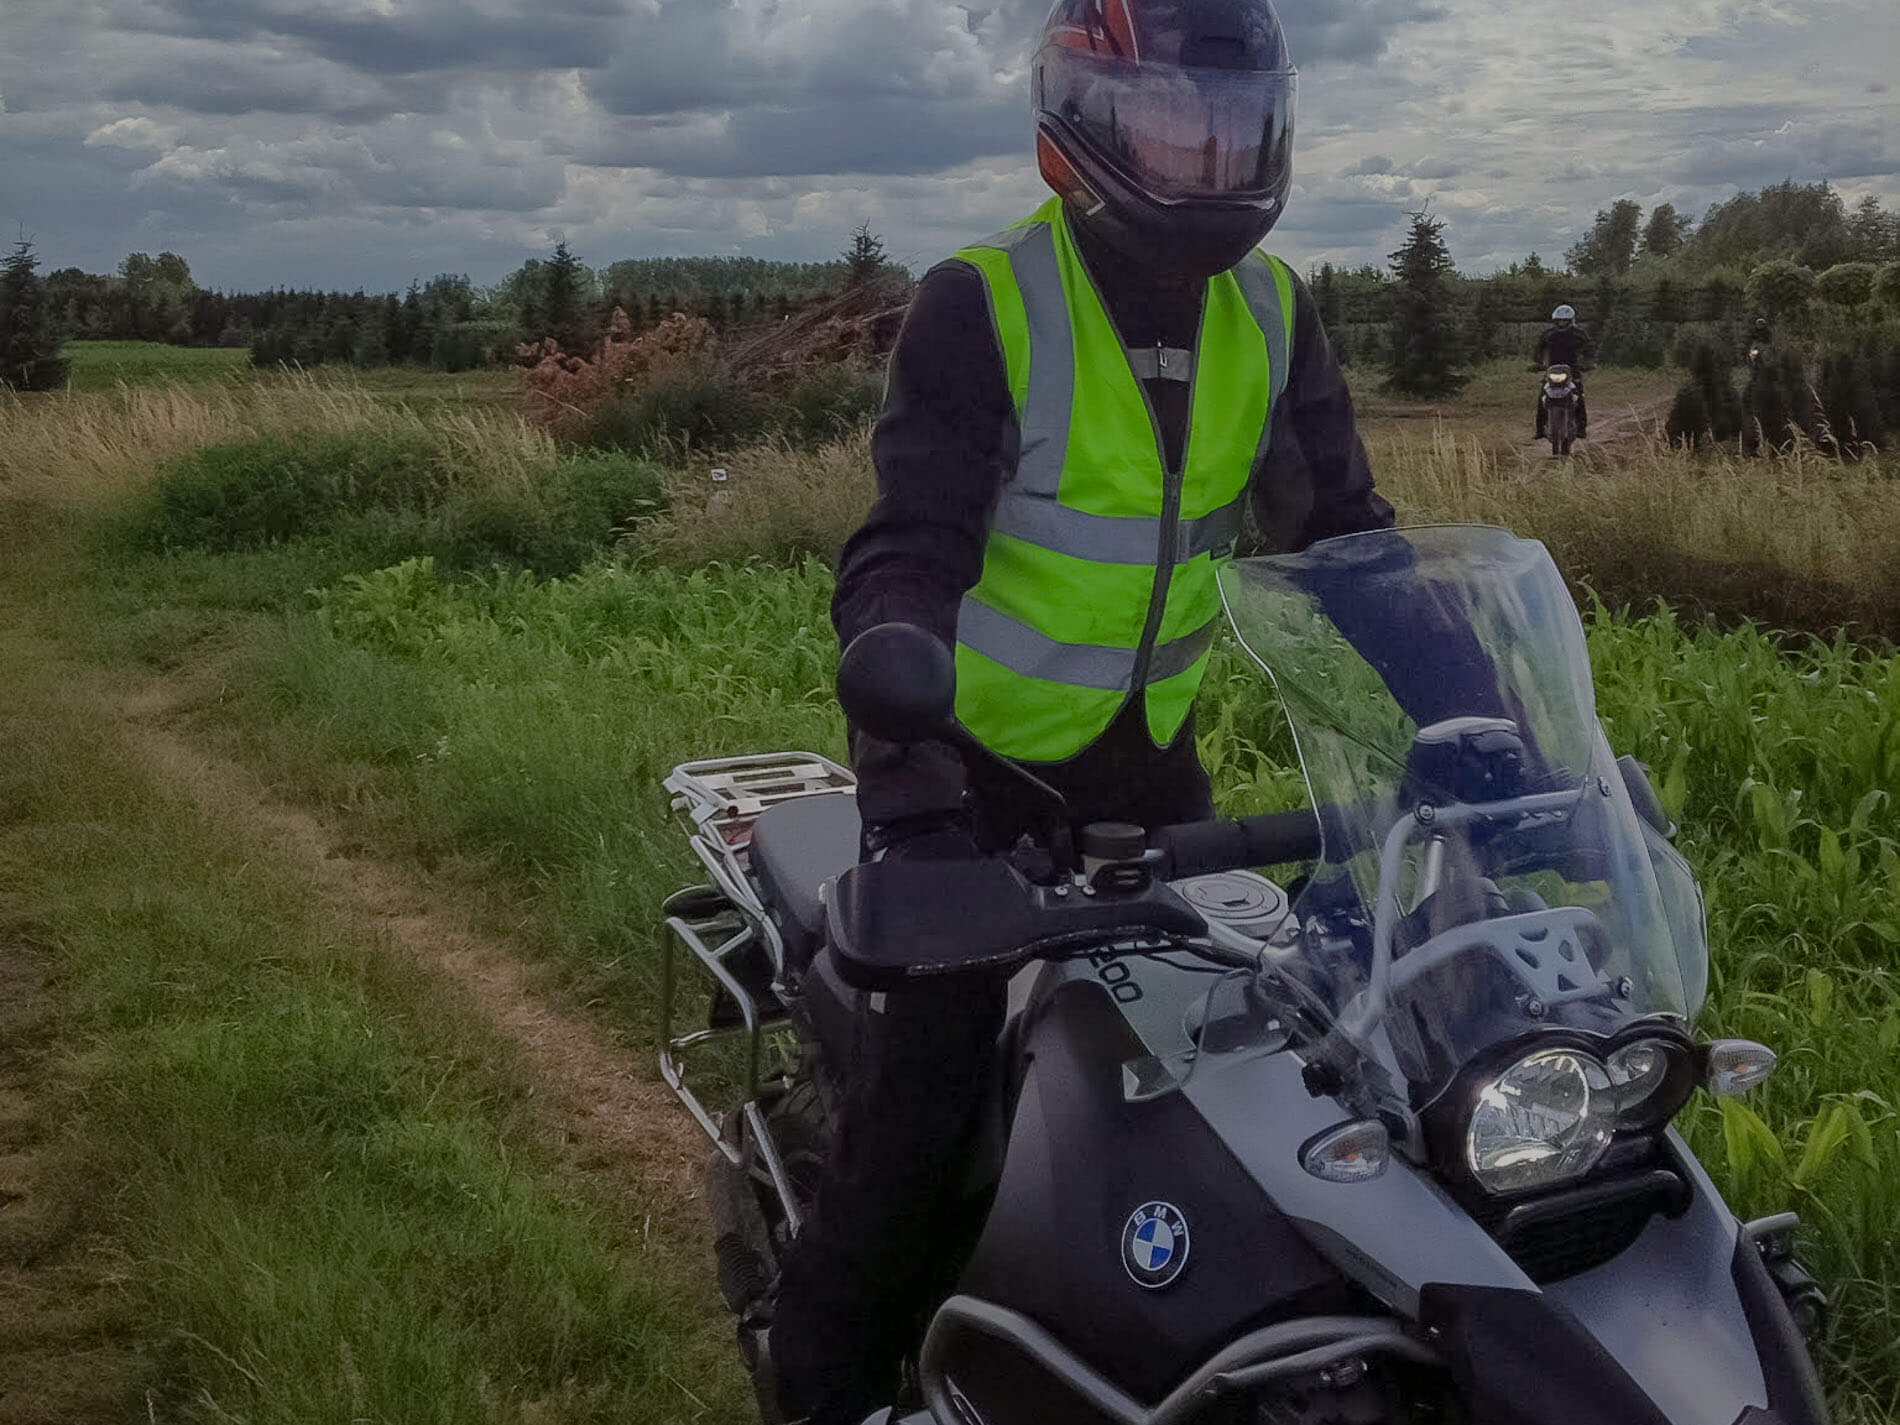 off-road motortraining voor beginners